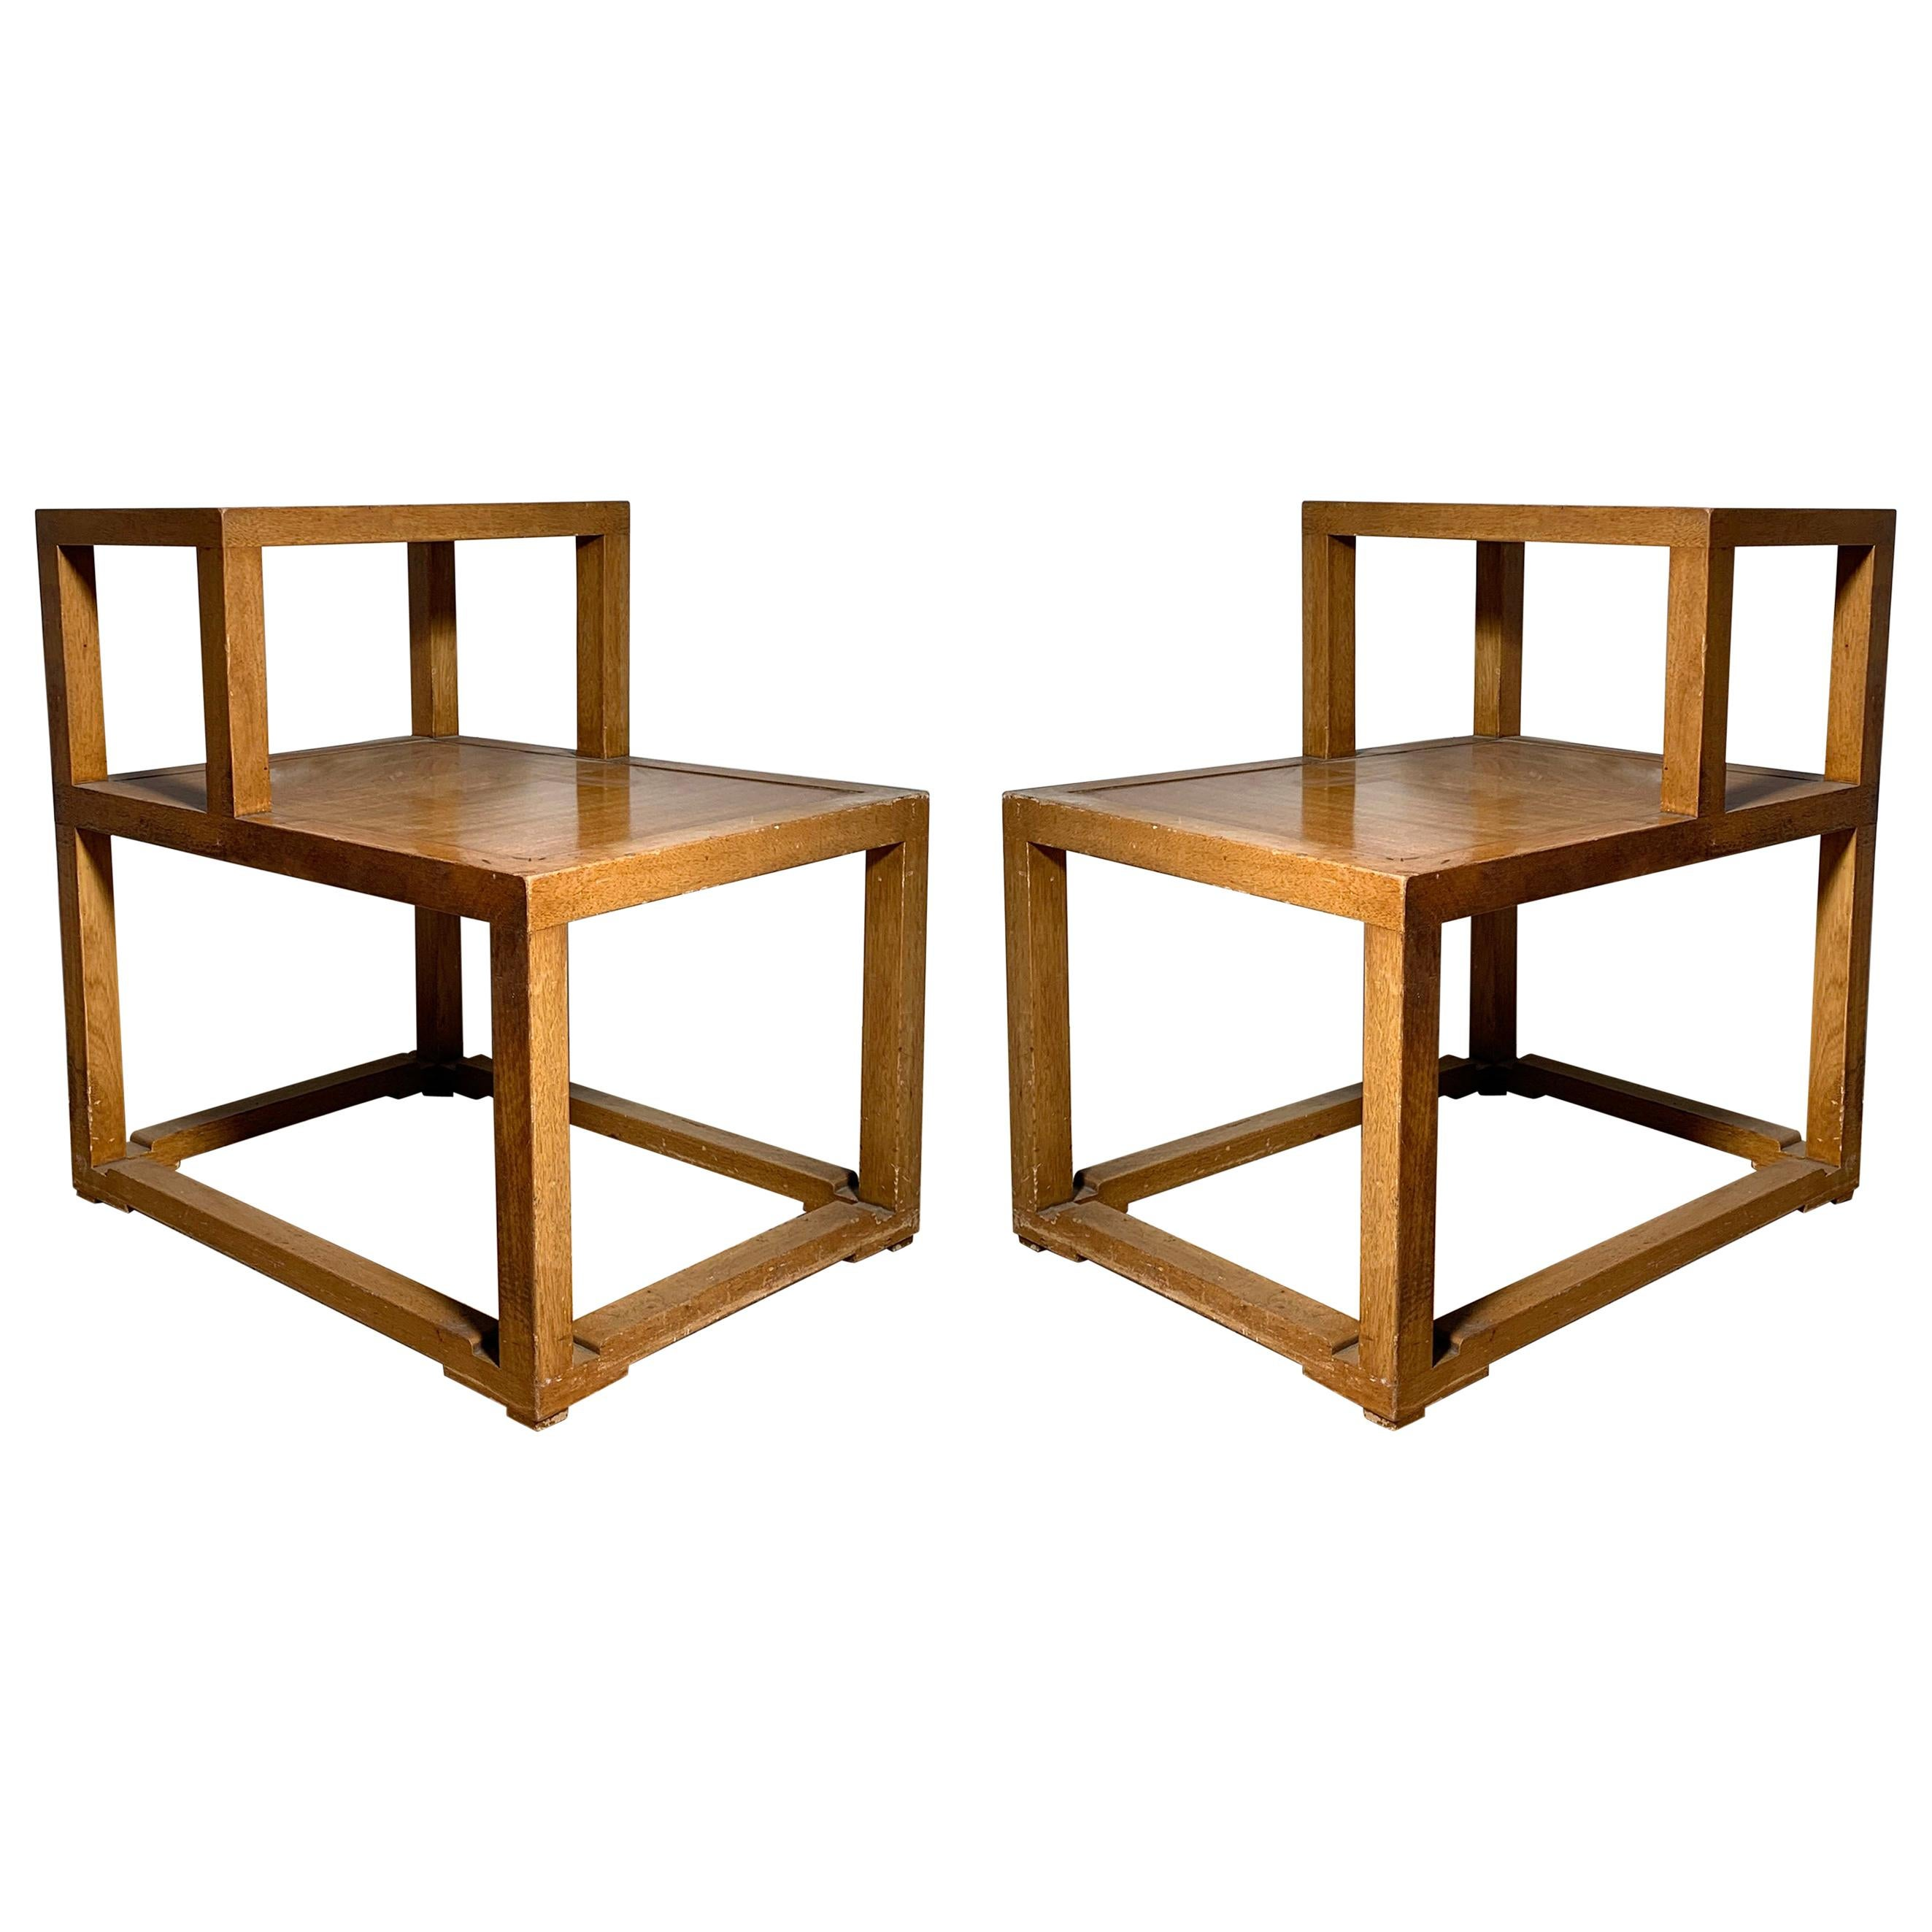 Early Edward Wormley Step End Tables / Nightstands for Dunbar